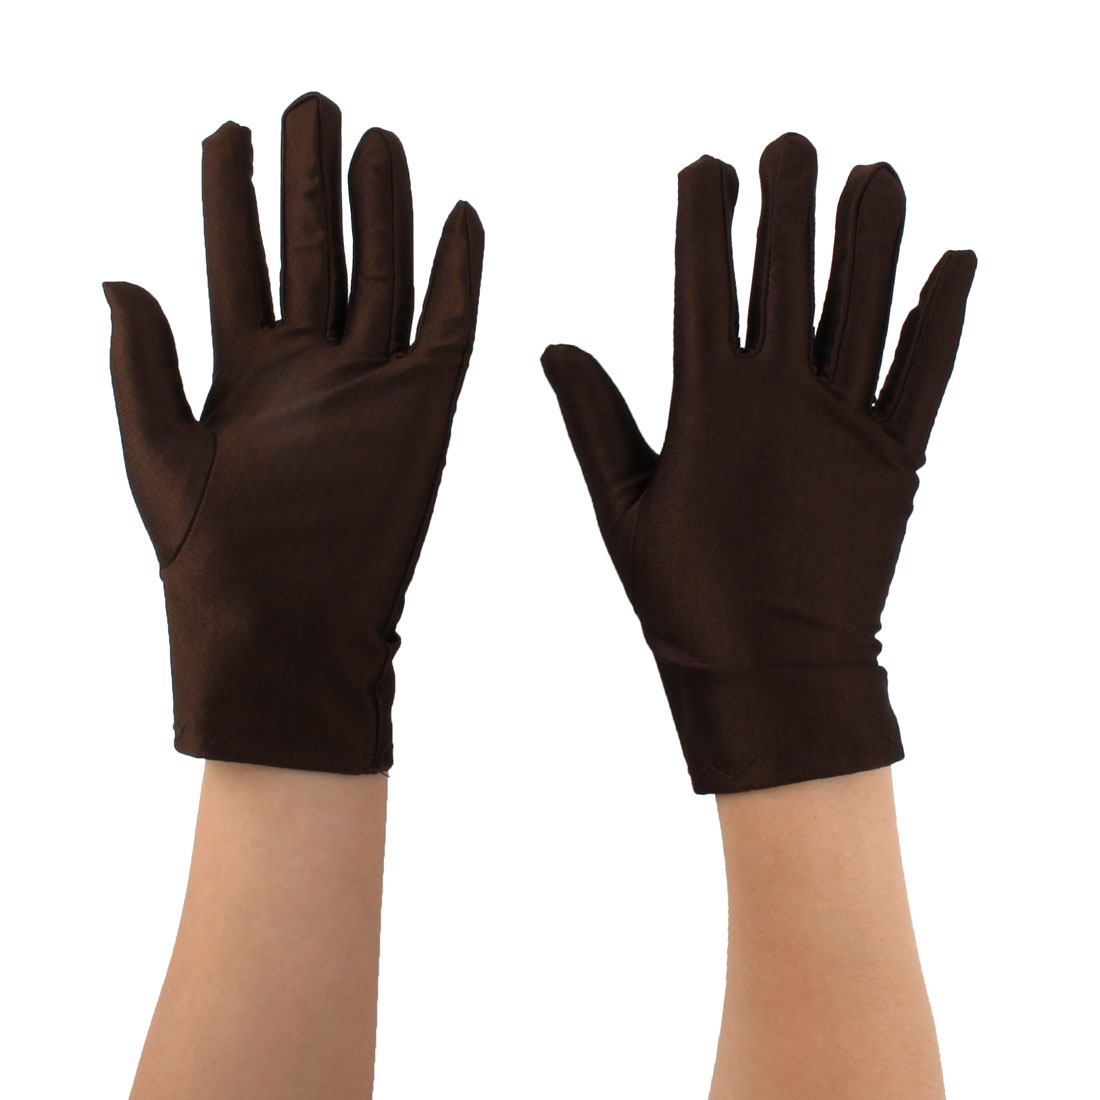 Lady Outdoor Cycling Riding Sun Resistant Gloves Mittens Chocolate Color Pair